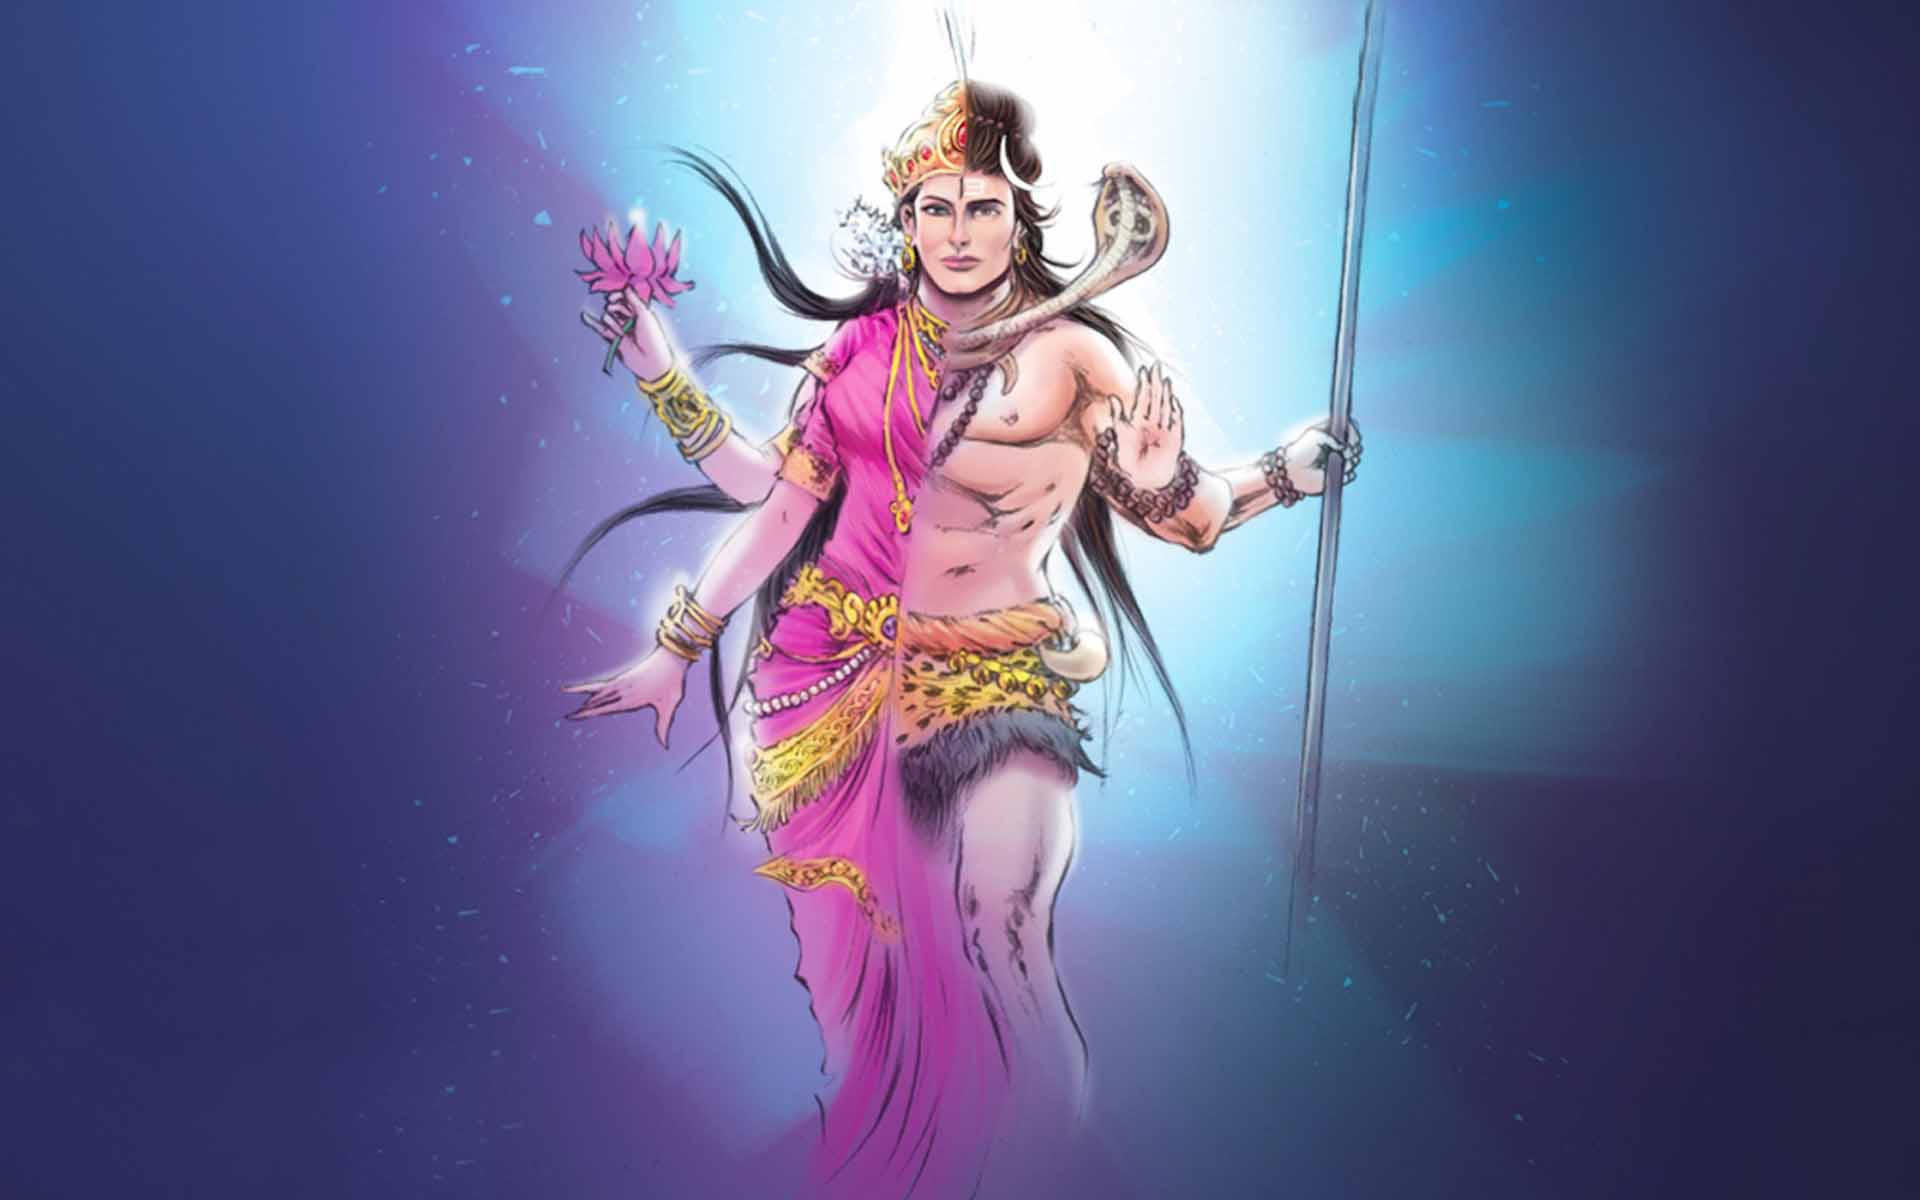 Lord Shiva Parvati Full Wallpapers And Backgrounds Full Hd Wallpaper Shiv 1920x1200 Wallpaper Teahub Io